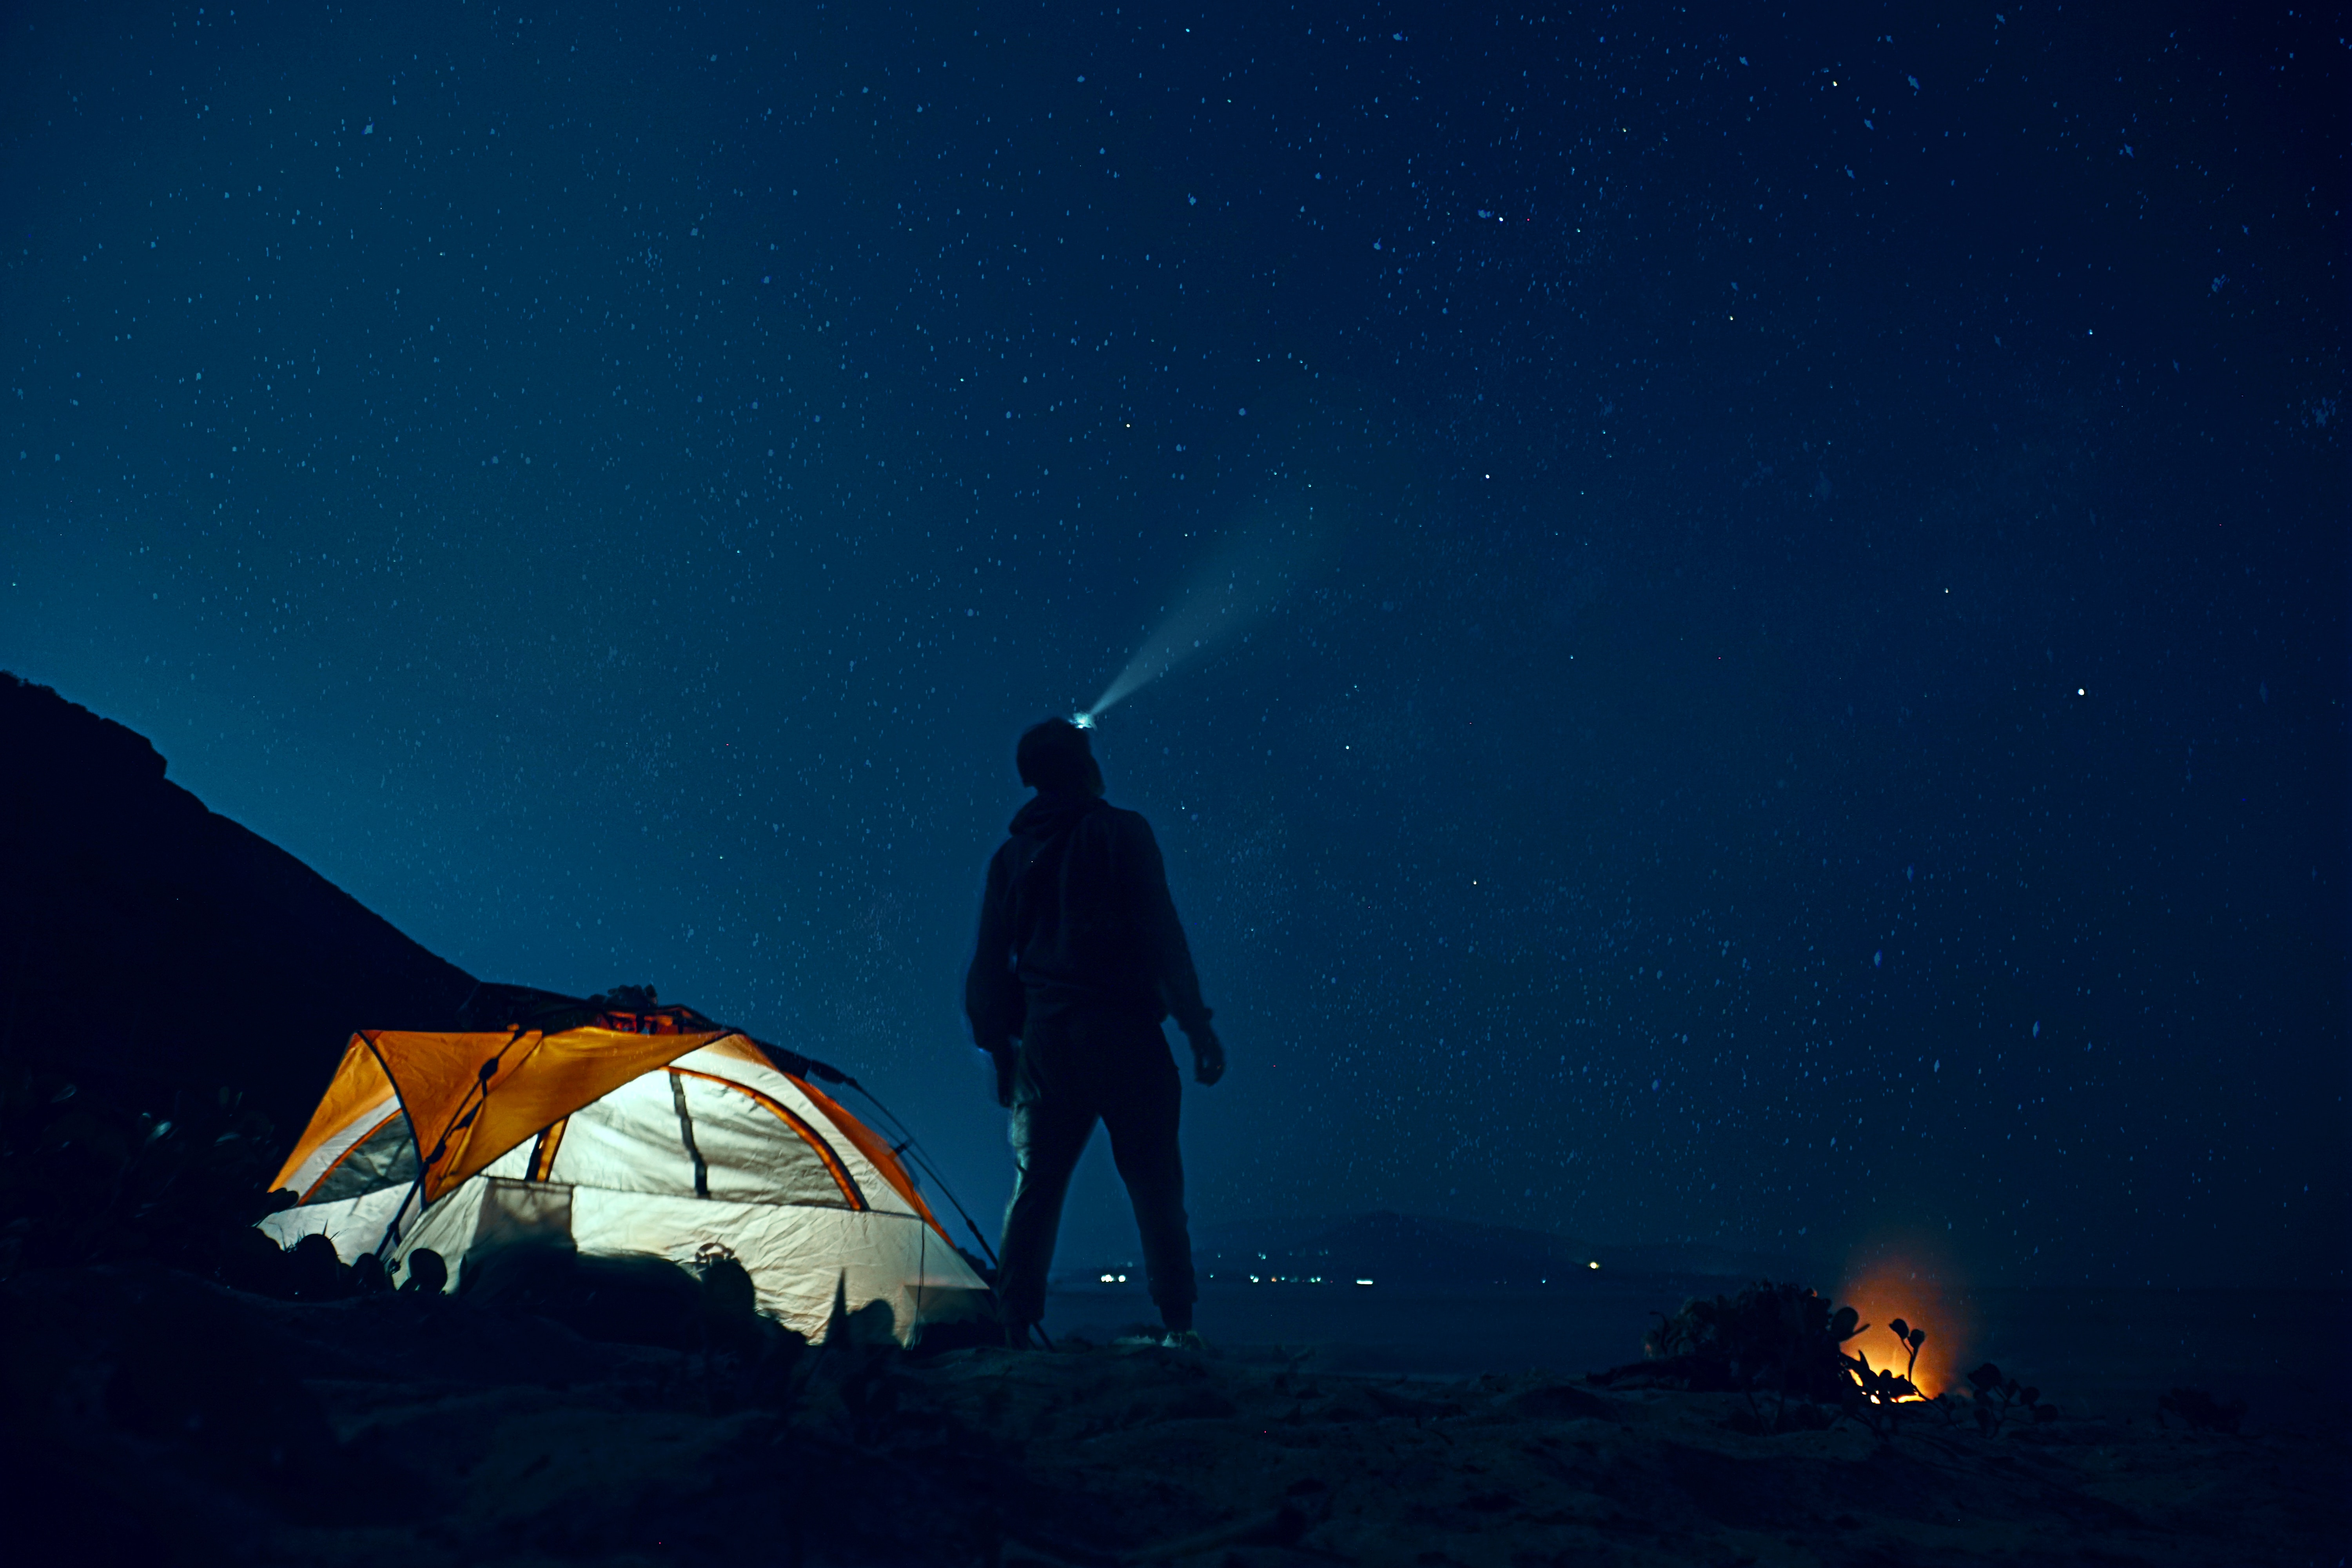 Camper looking up into starry night sky by Rahul Bhosale from unsplash.jpg